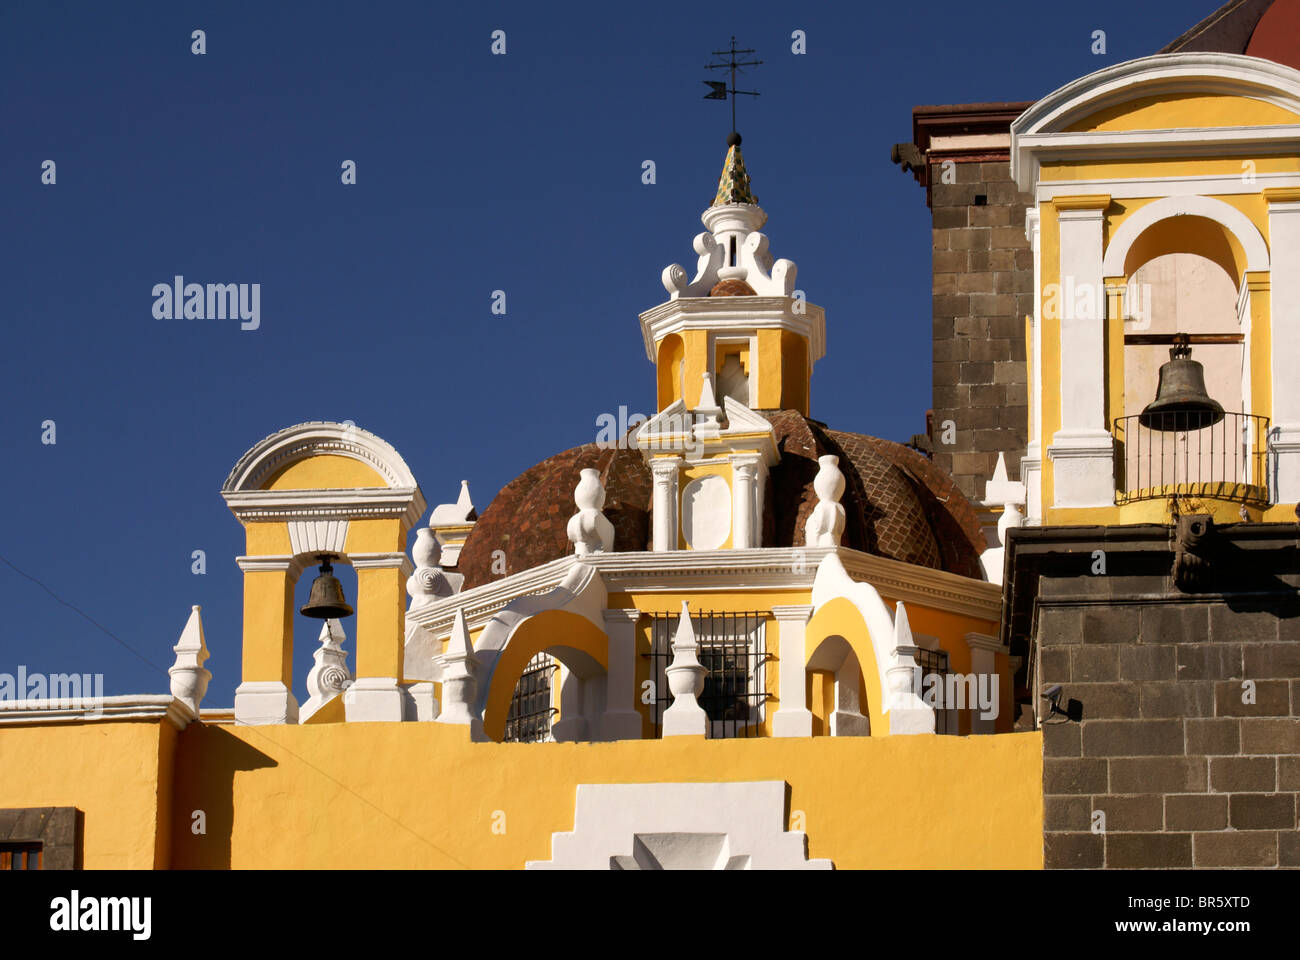 Architectural detail, Cathedral of the Immaculate Conception in Puebla, Mexico. - Stock Image